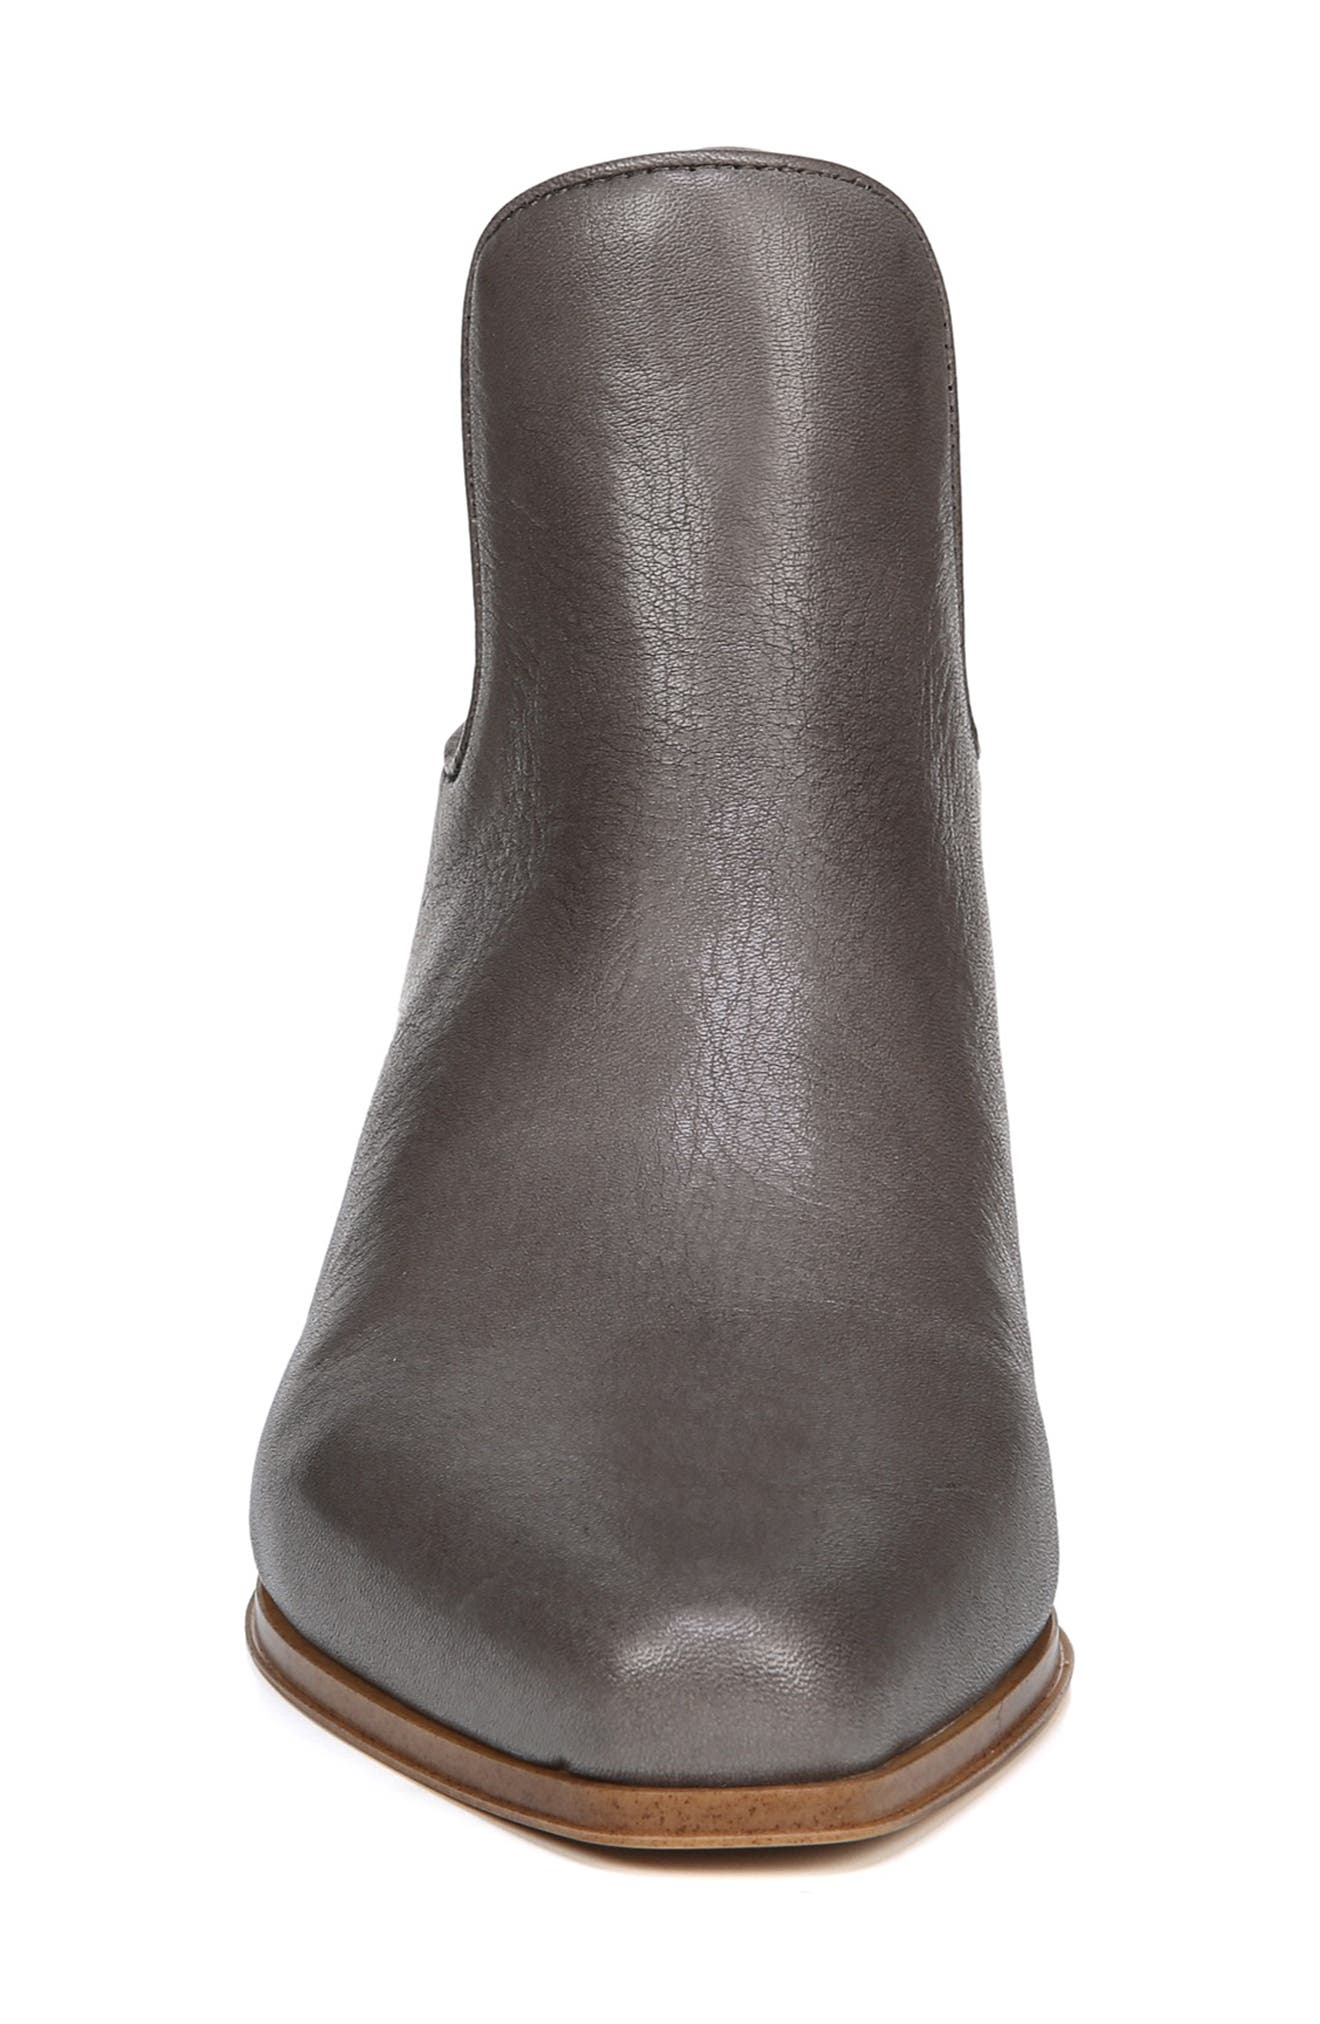 Ashbury Bootie,                             Alternate thumbnail 4, color,                             GREYSTONE LEATHER